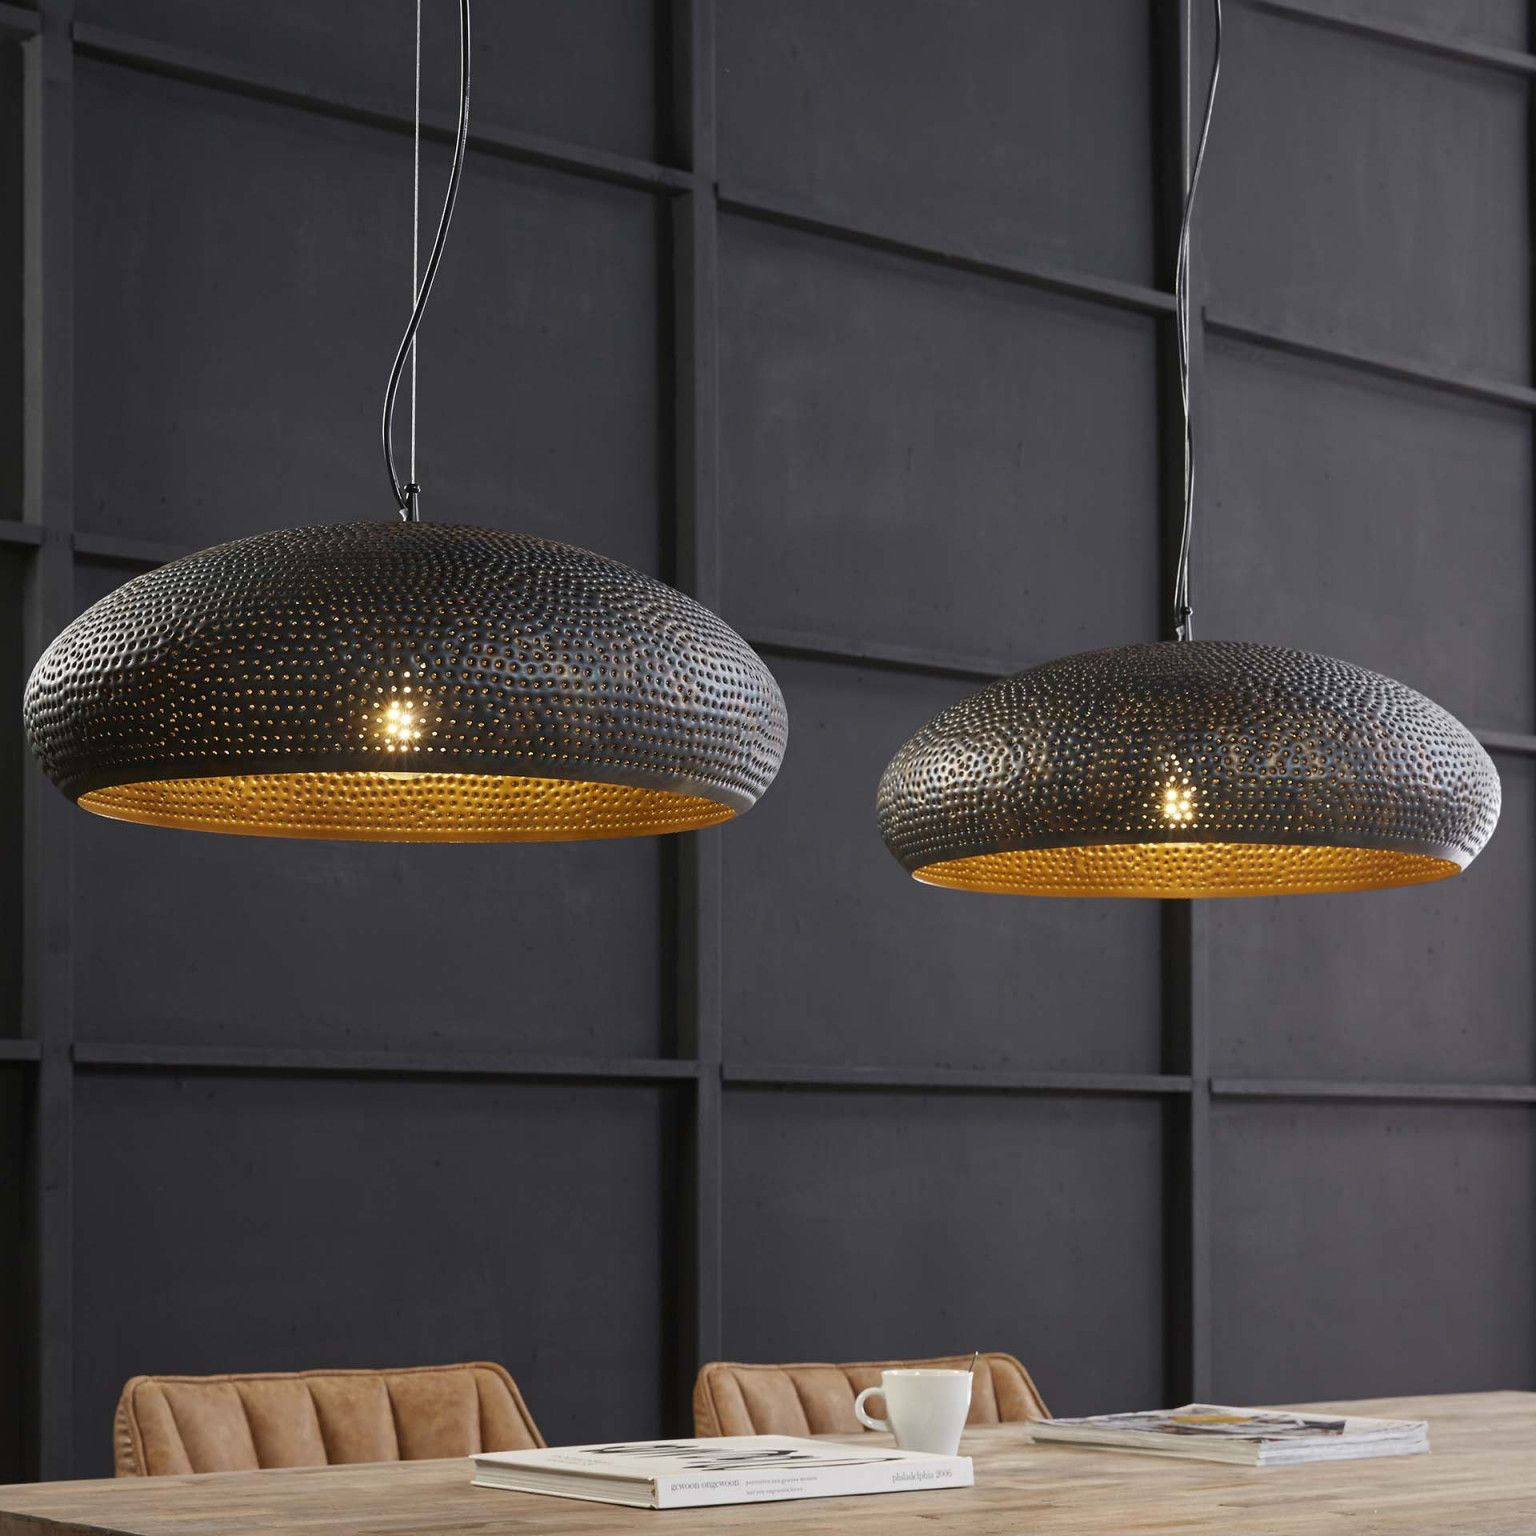 Hanglamp \'Romola\' 2-lamps | woonkamer | Pinterest | Lights and Interiors